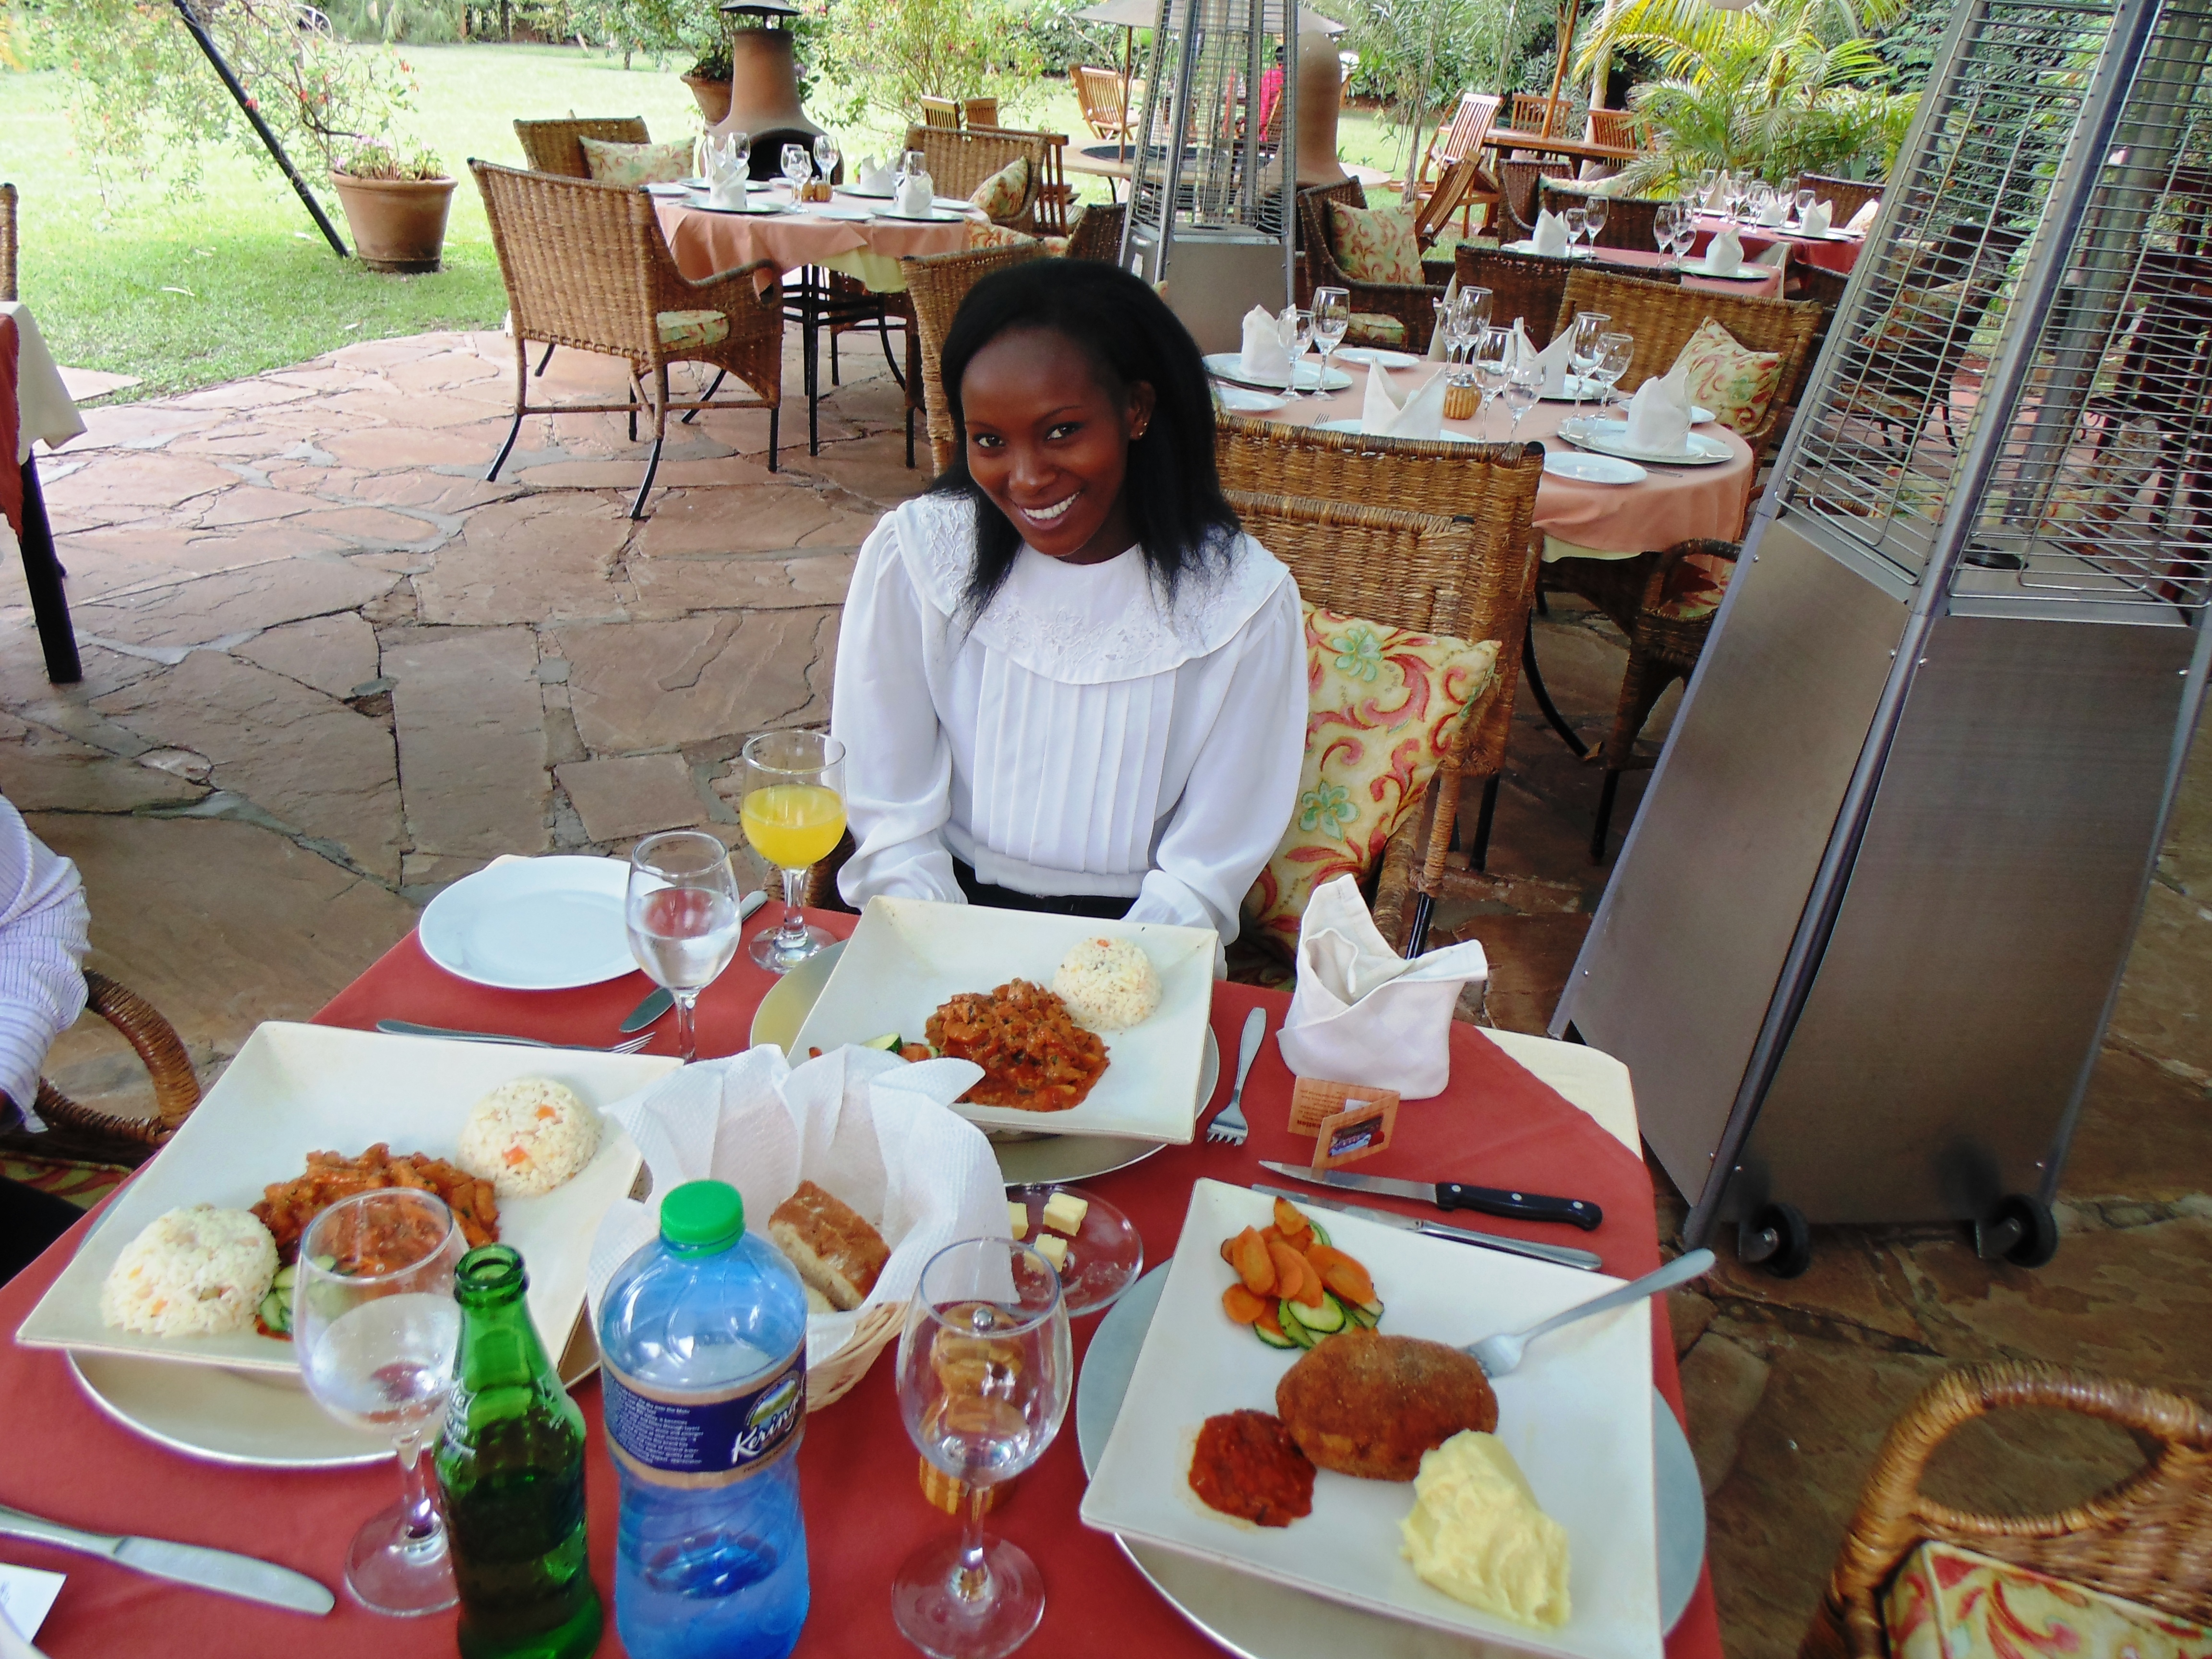 Rudy's Guesthouse-Tusafiri Africa Travels???????????????????????????????